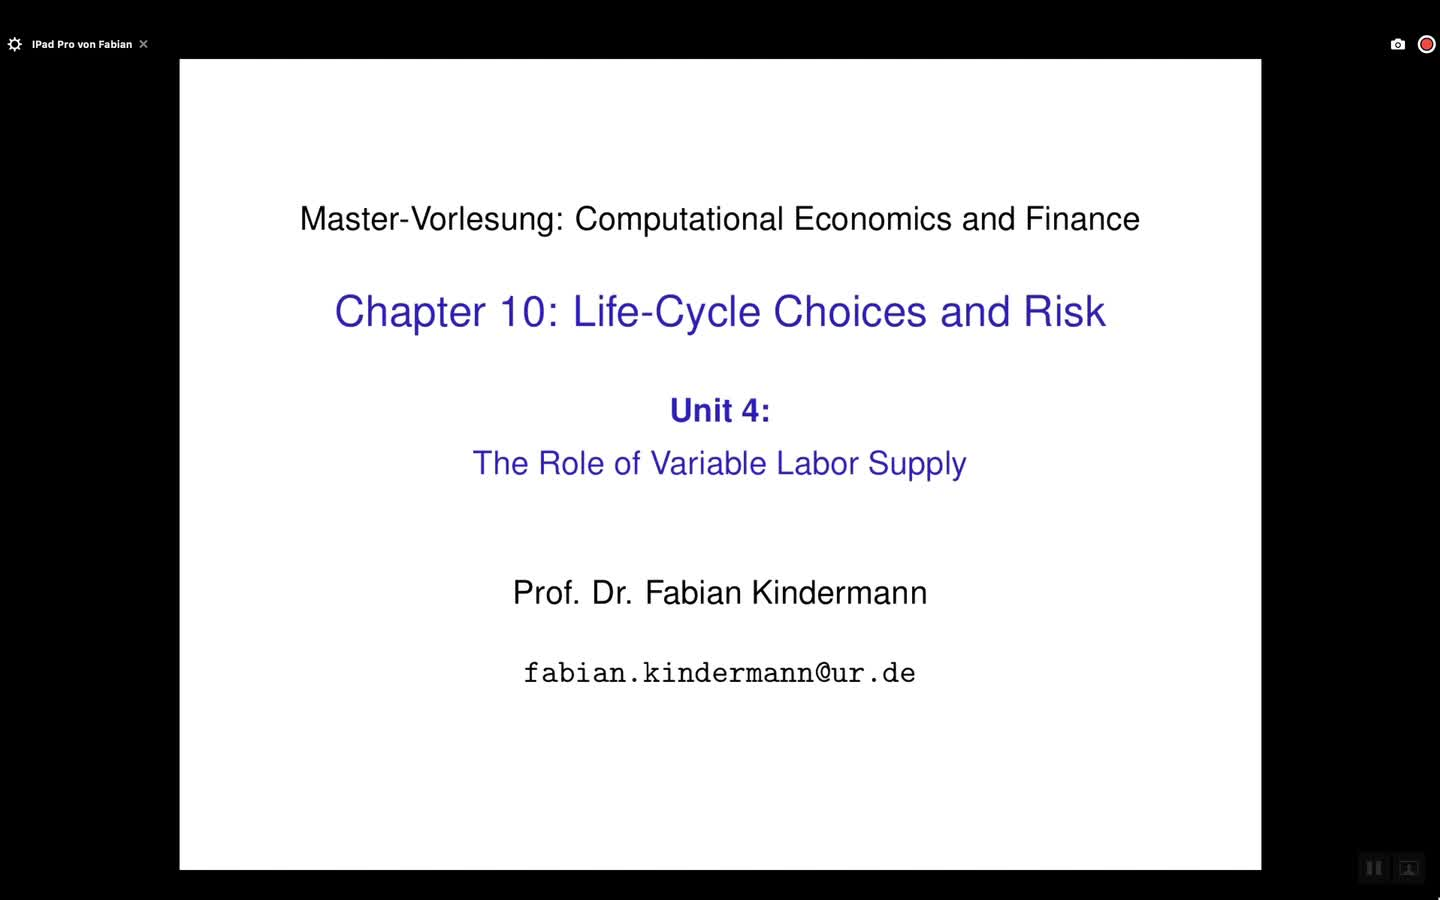 Chapter 10 - Unit 4 - The Role of Variable Labor Supply